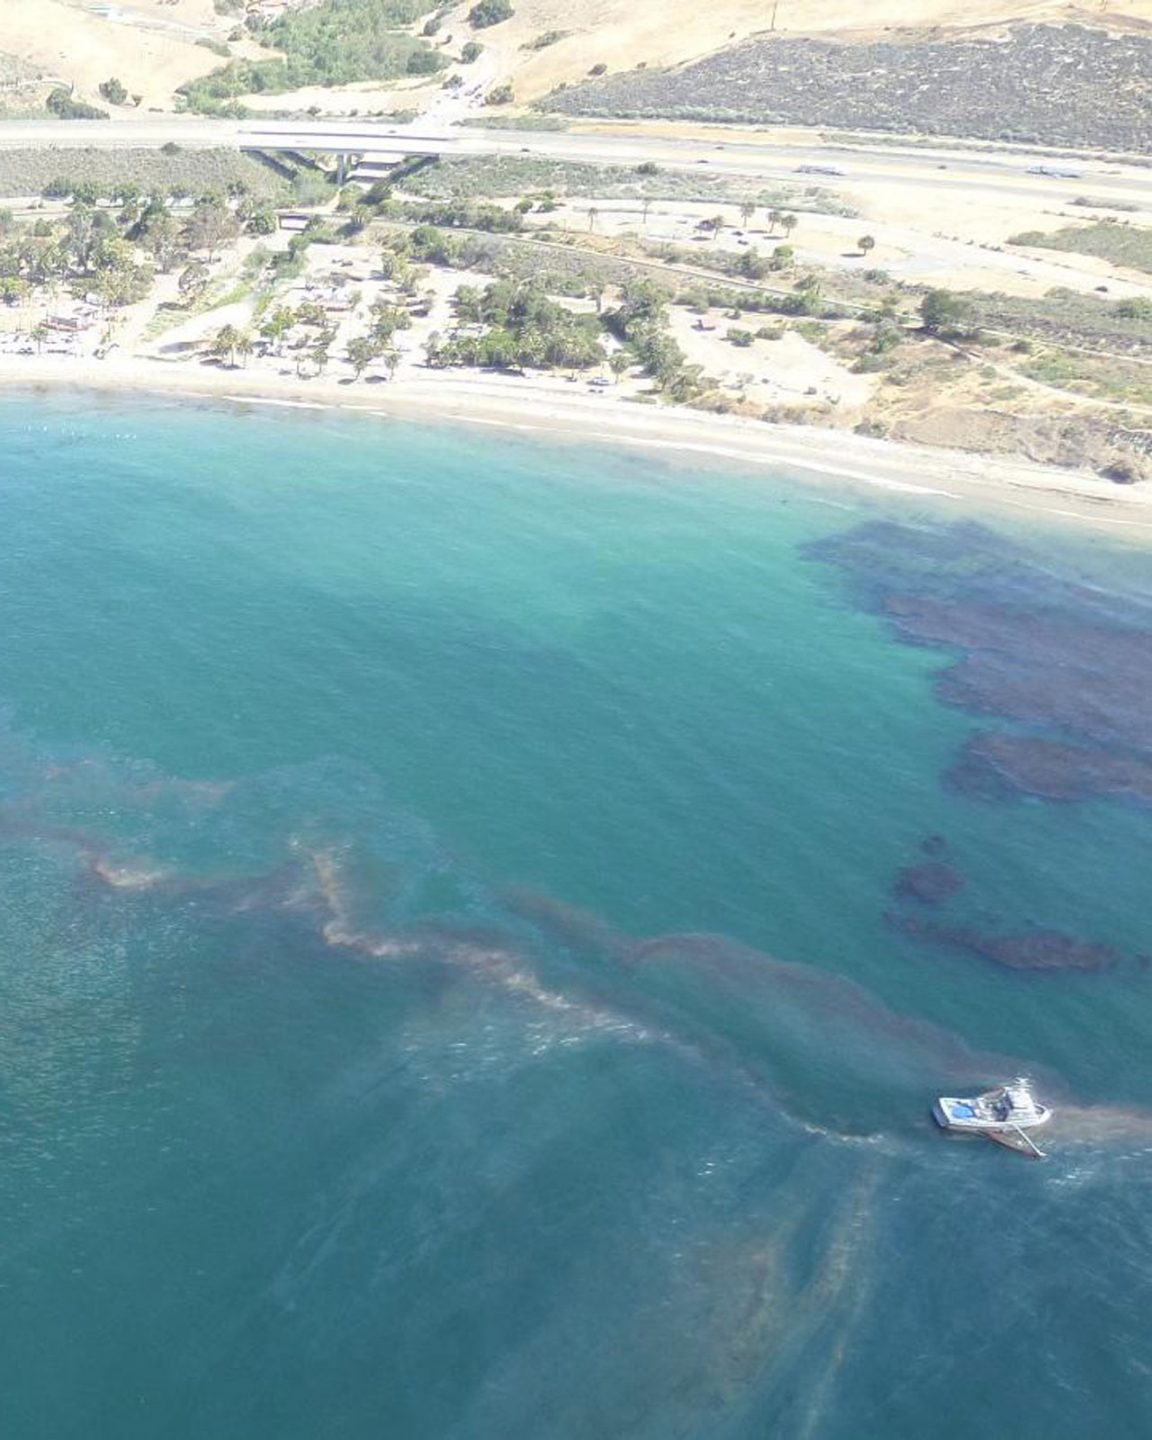 An aerial view of the refugio oil spill